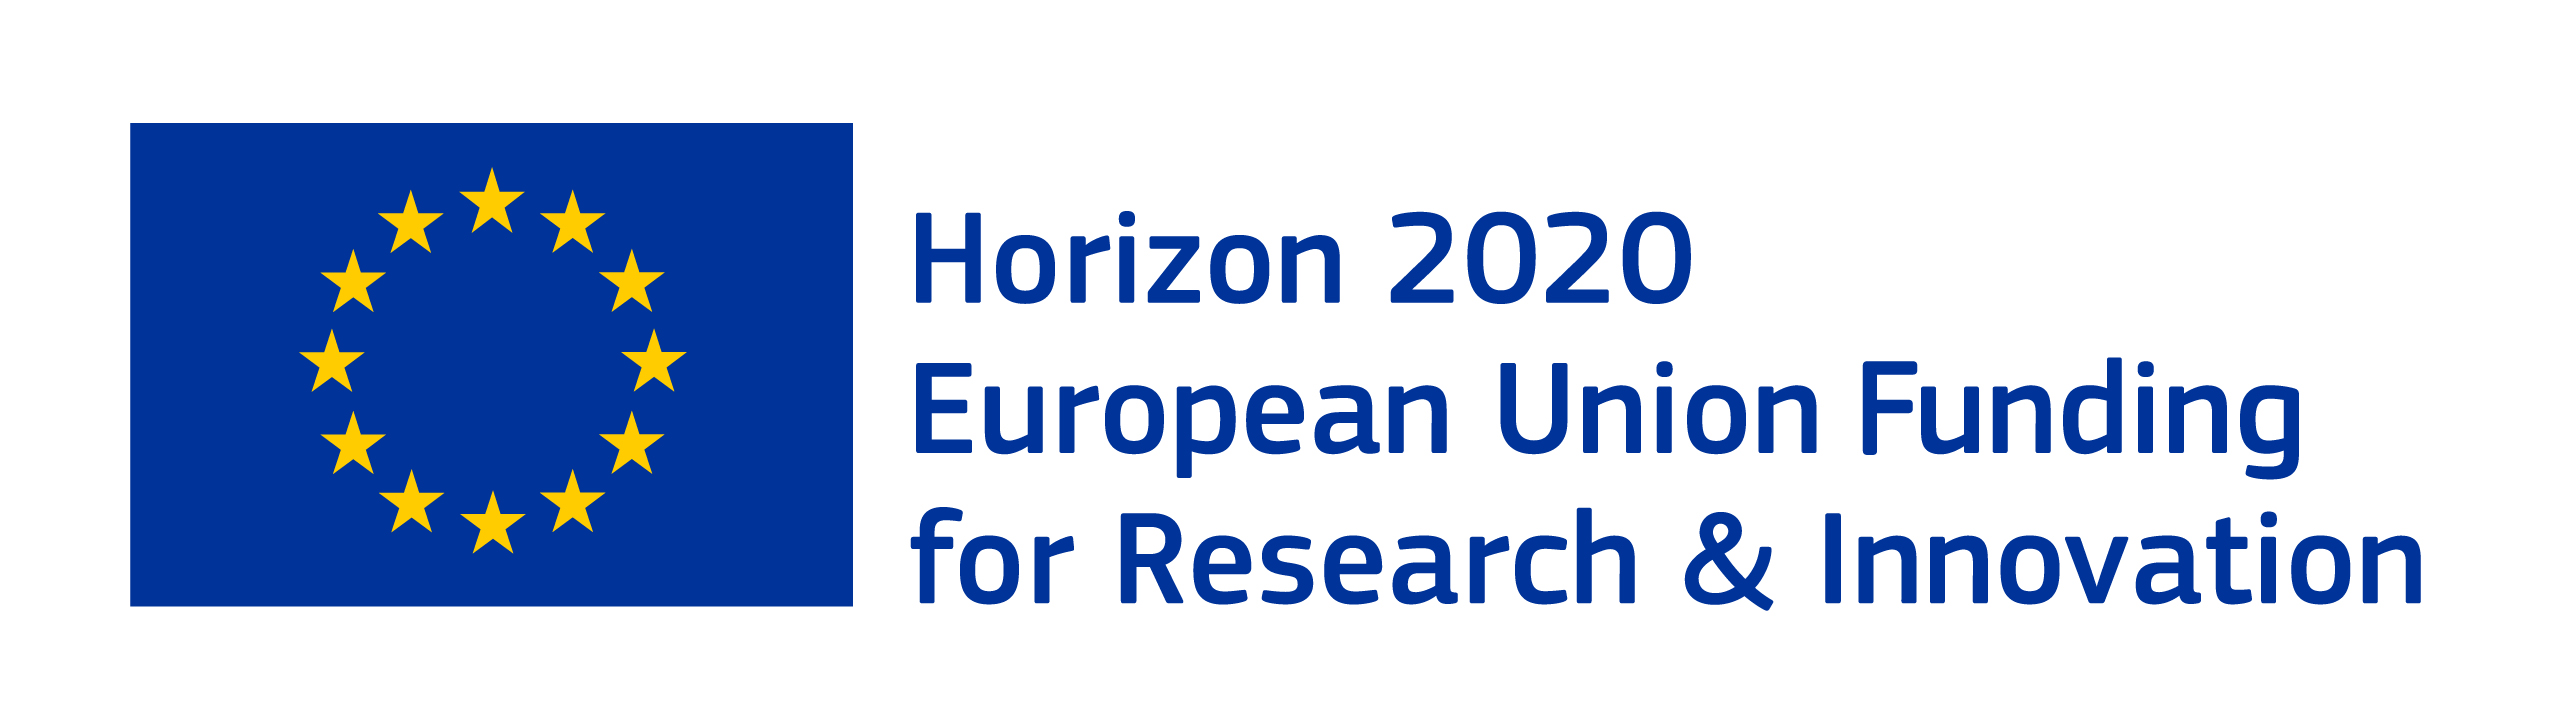 H2020 300ppp